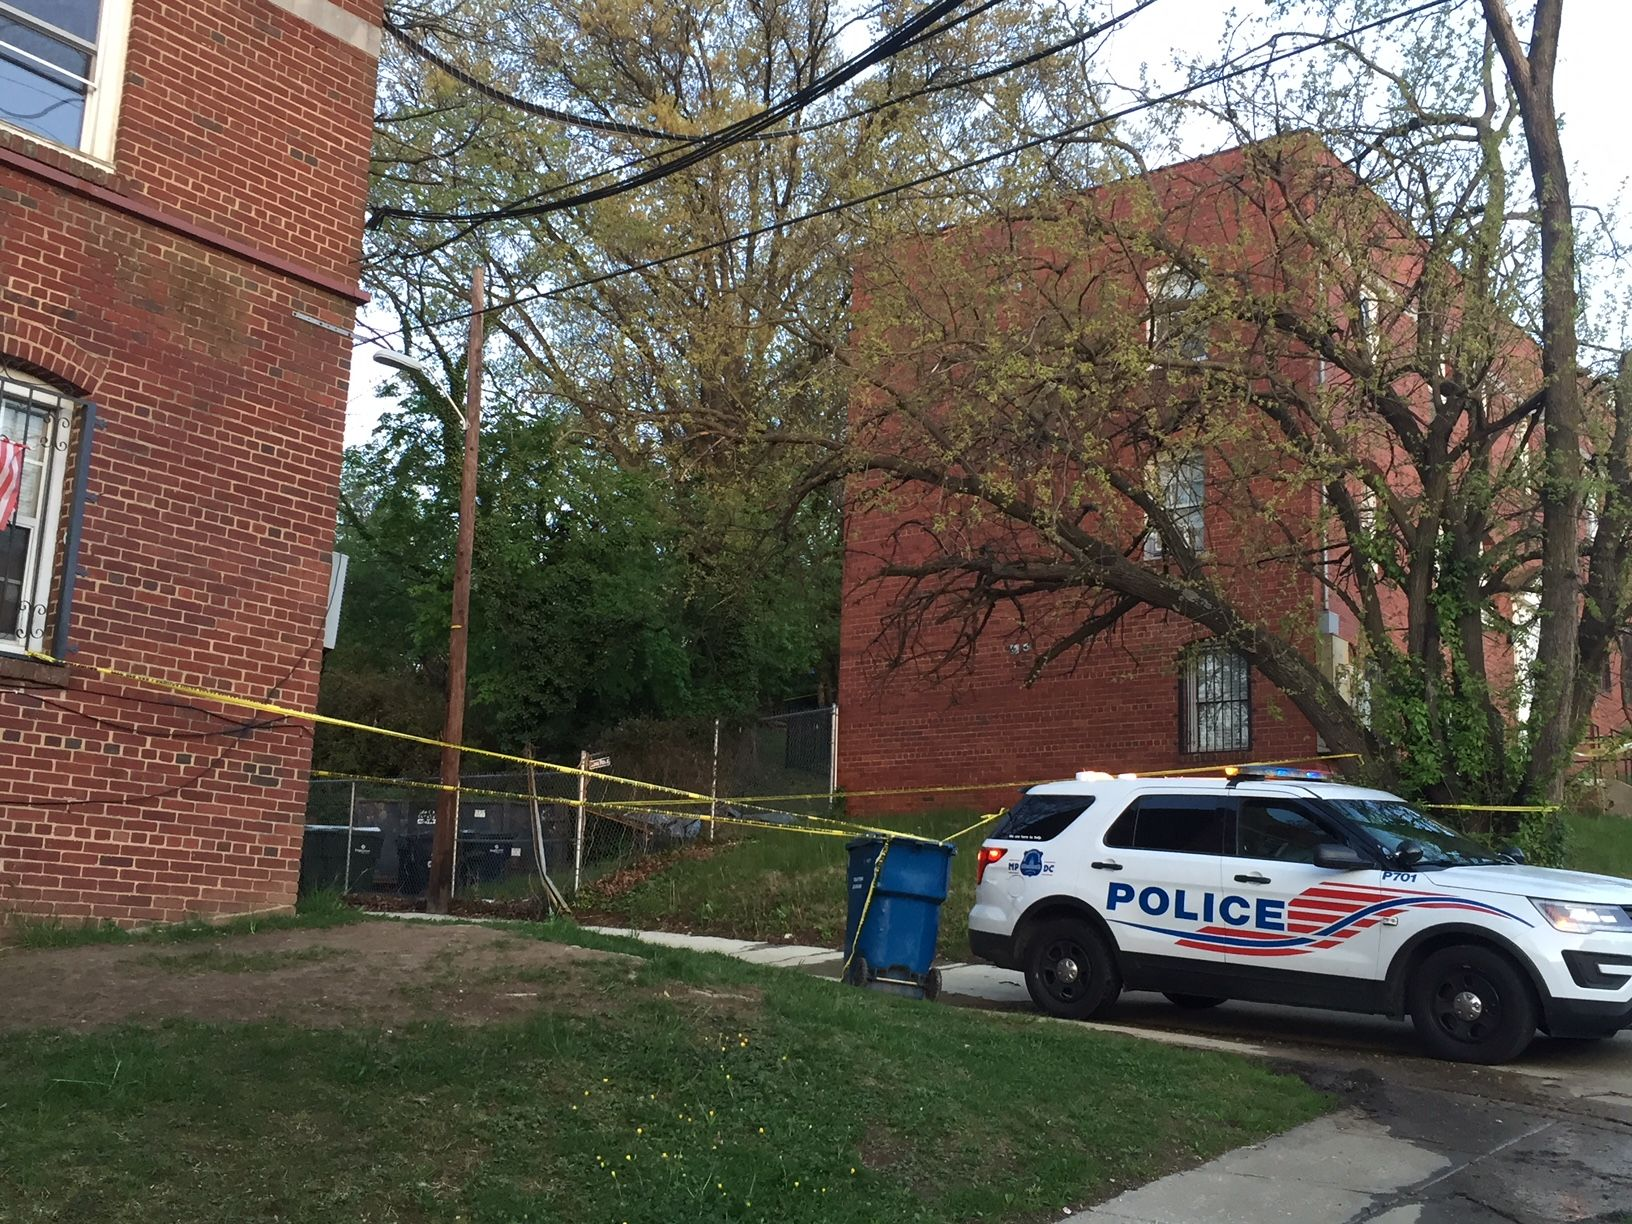 DC police identify remains of 3 women found in SE